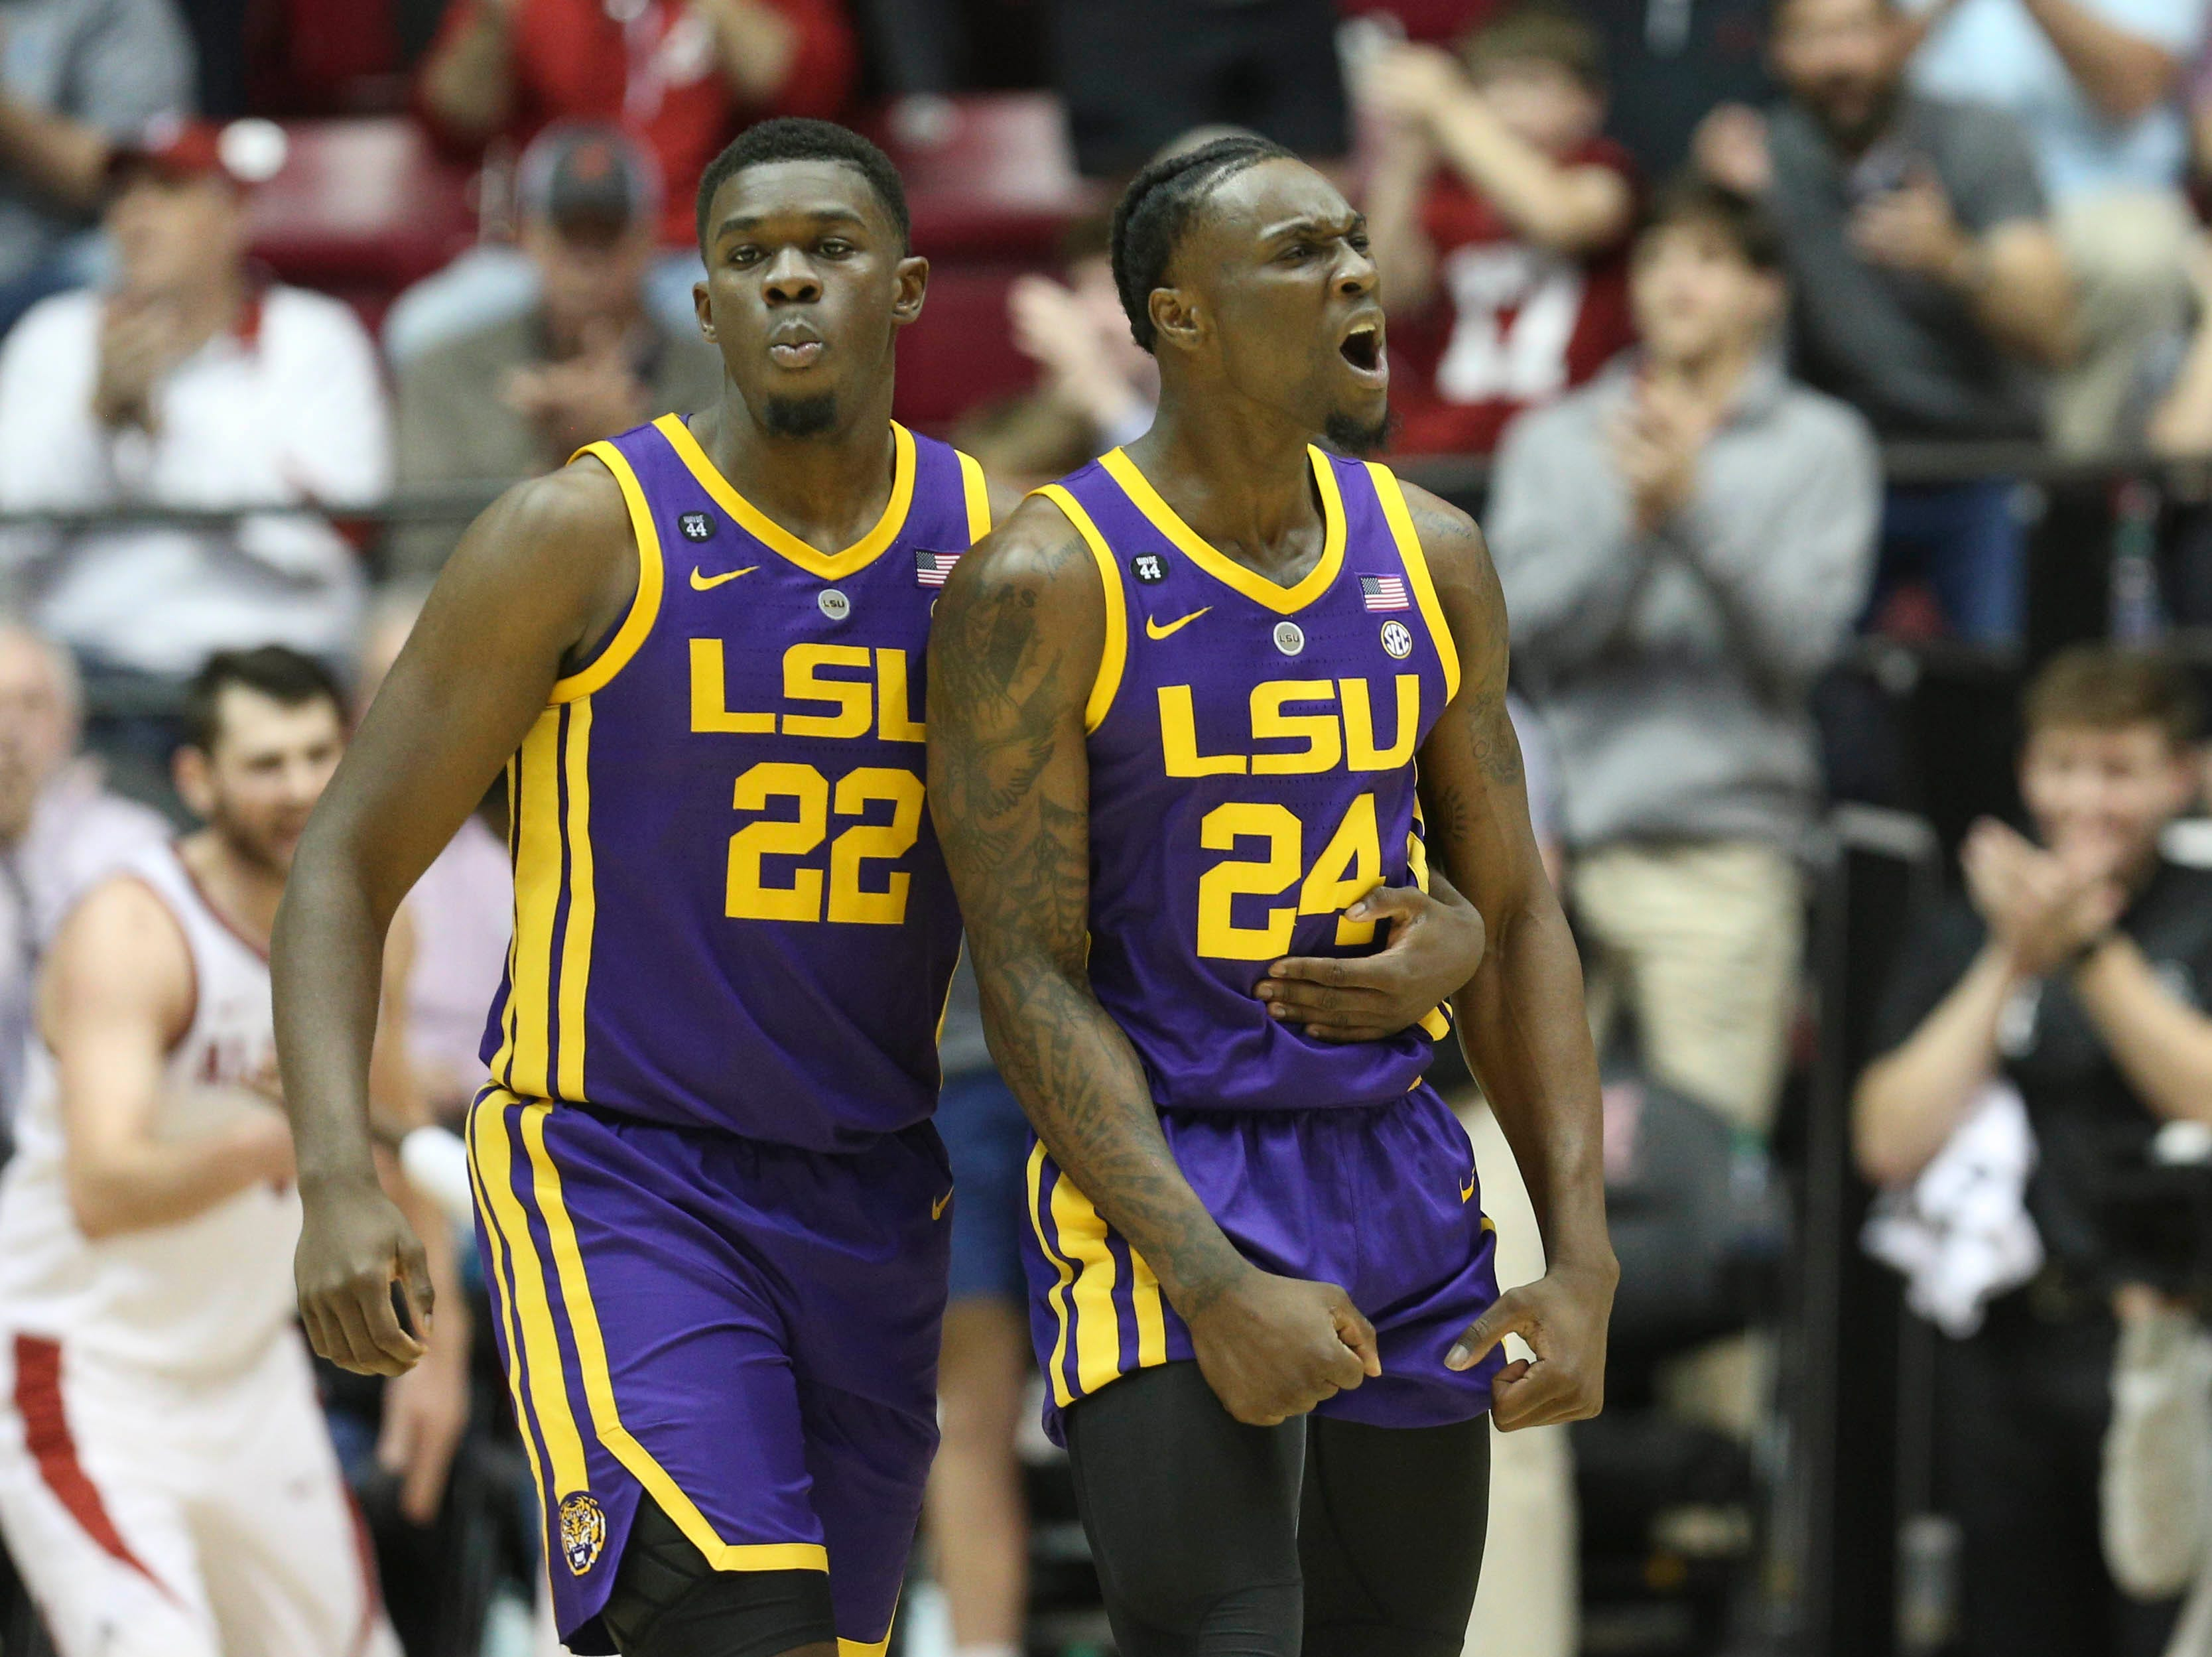 Mar 2, 2019; Tuscaloosa, AL, USA; LSU Tigers forward Darius Days (22) holds back LSU Tigers forward Emmitt Williams (24) after Williams was called for a foulduring the second half against Alabama Crimson Tide at Coleman Coliseum. Mandatory Credit: Marvin Gentry-USA TODAY Sports